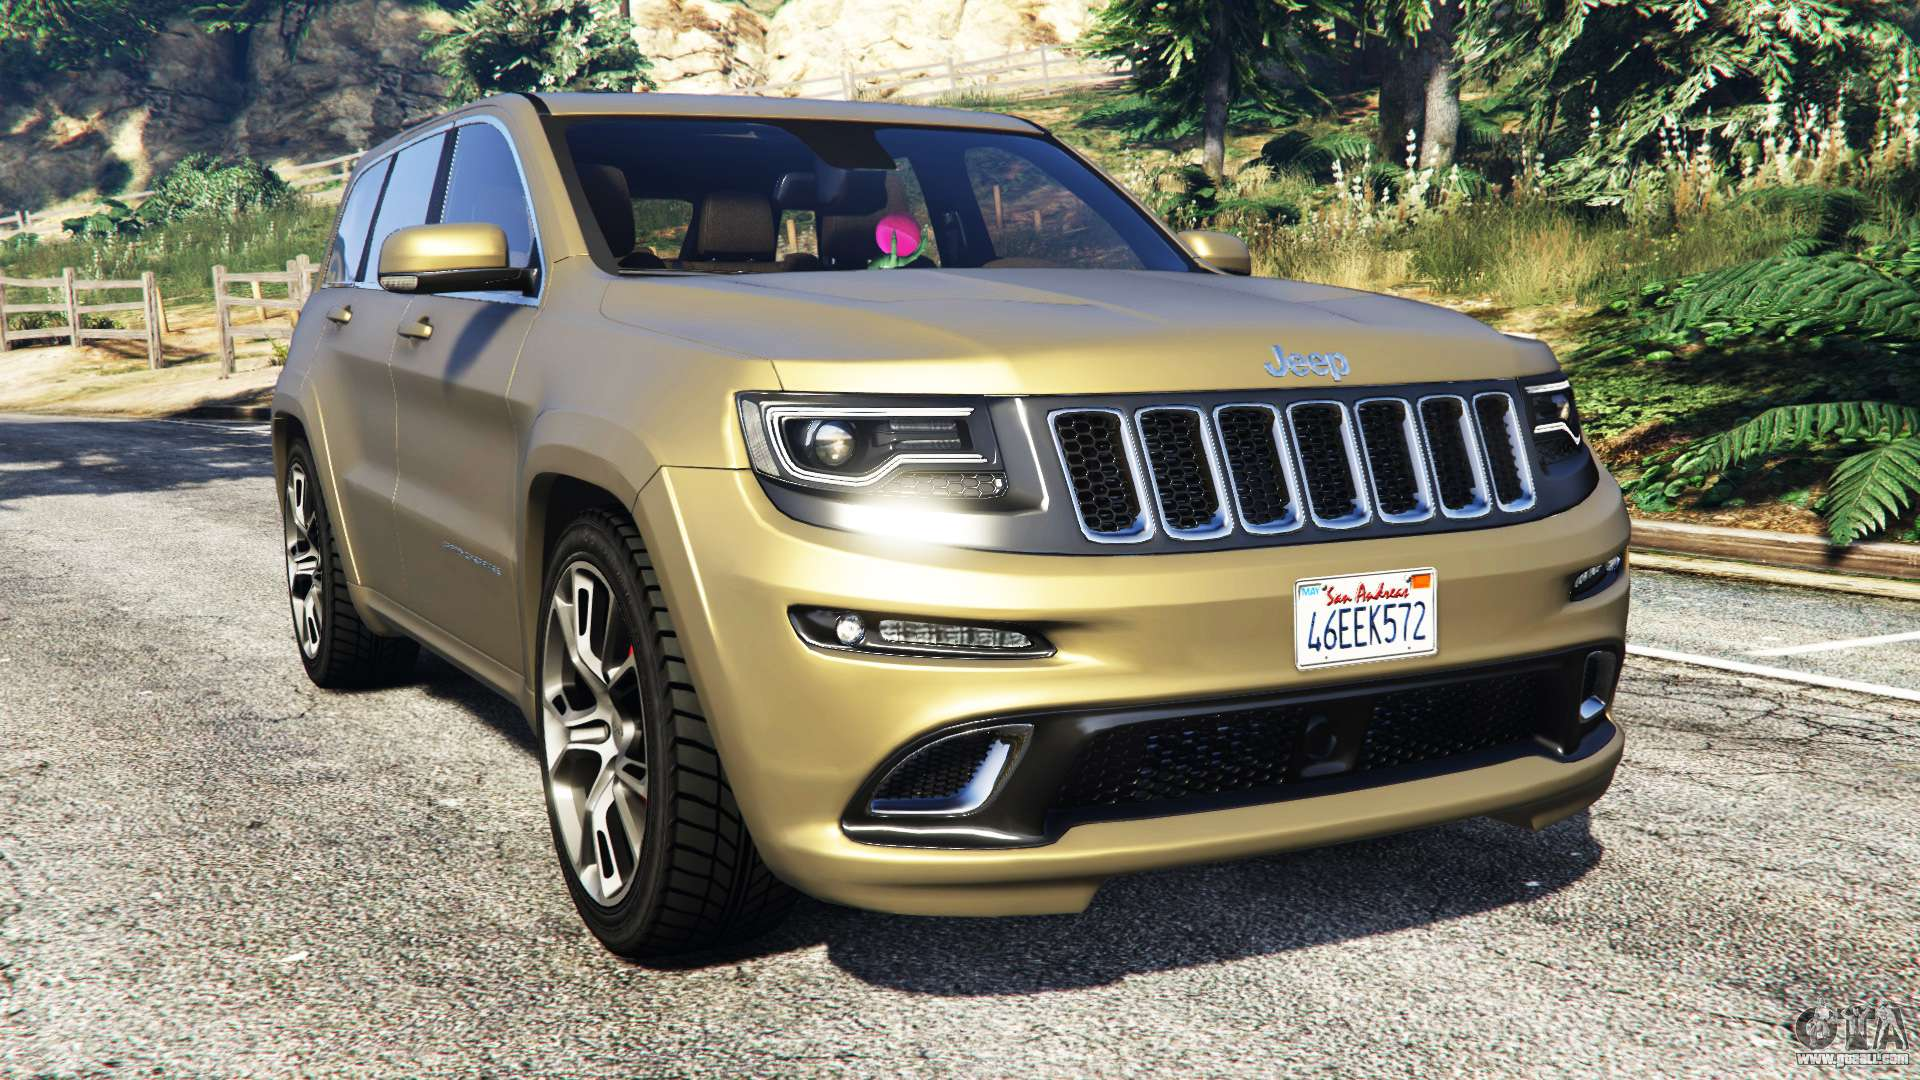 Jeep Grand Cherokee Srt 8 2014 Replace For Gta 5